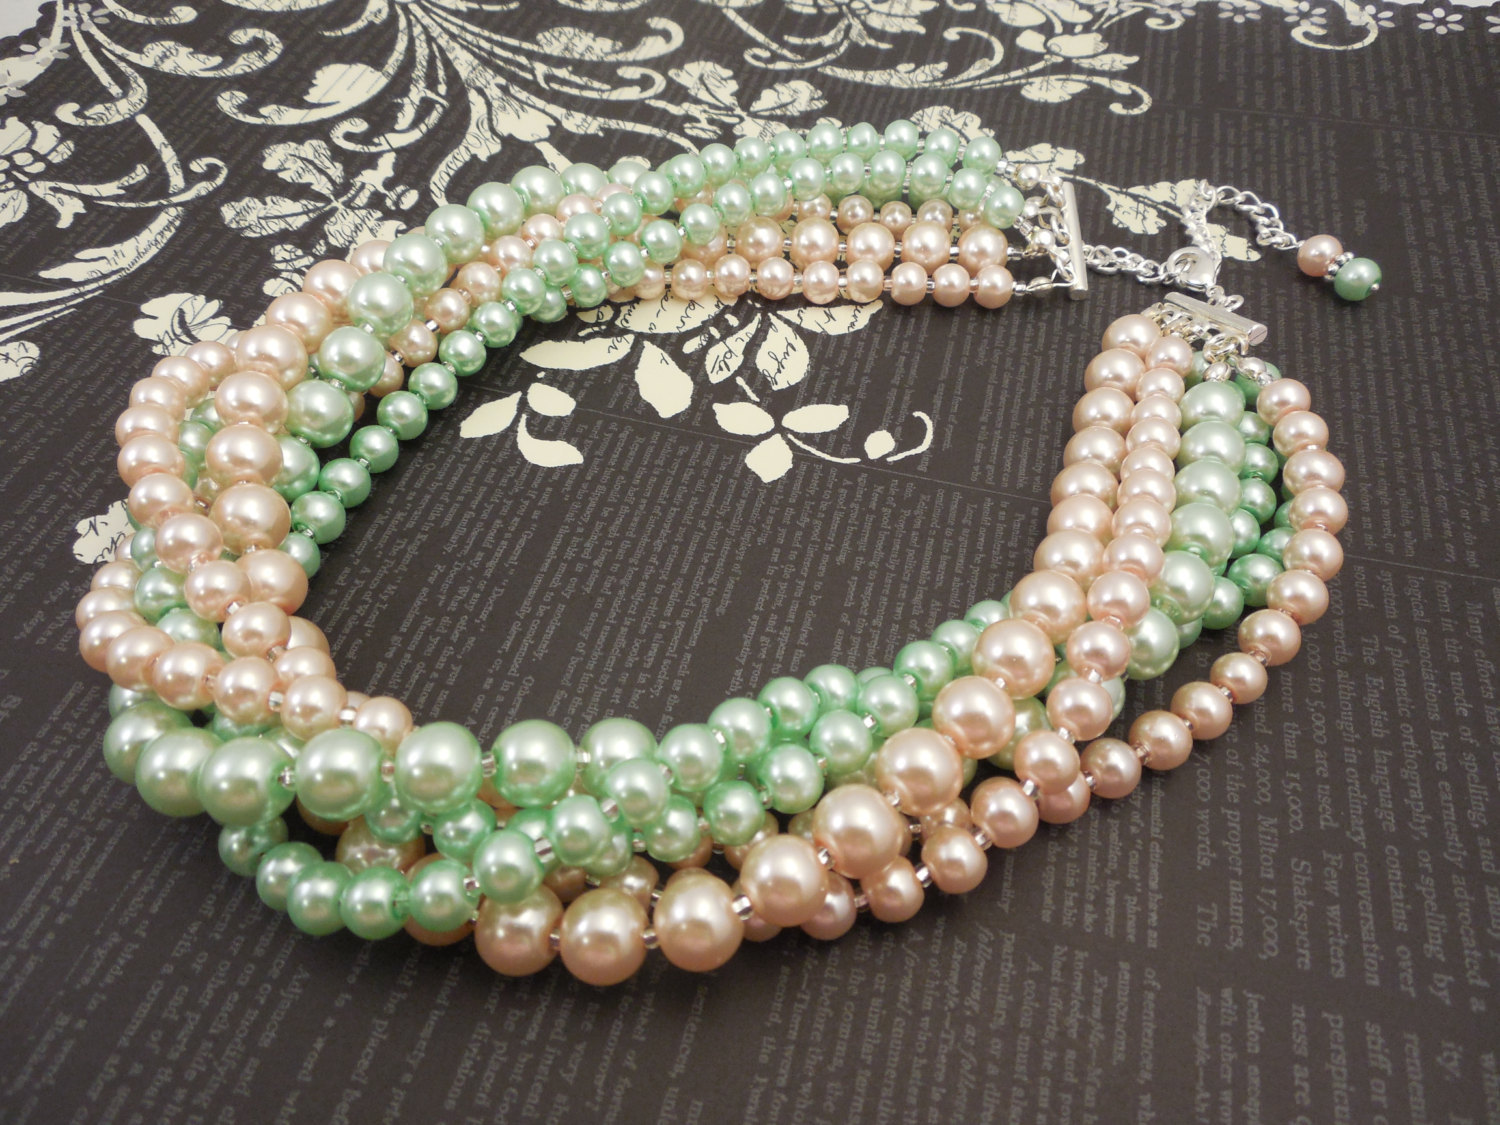 Primary image for Multi Strand Choker Style Necklace with Blush Peach & Mint Green Glass Pearls